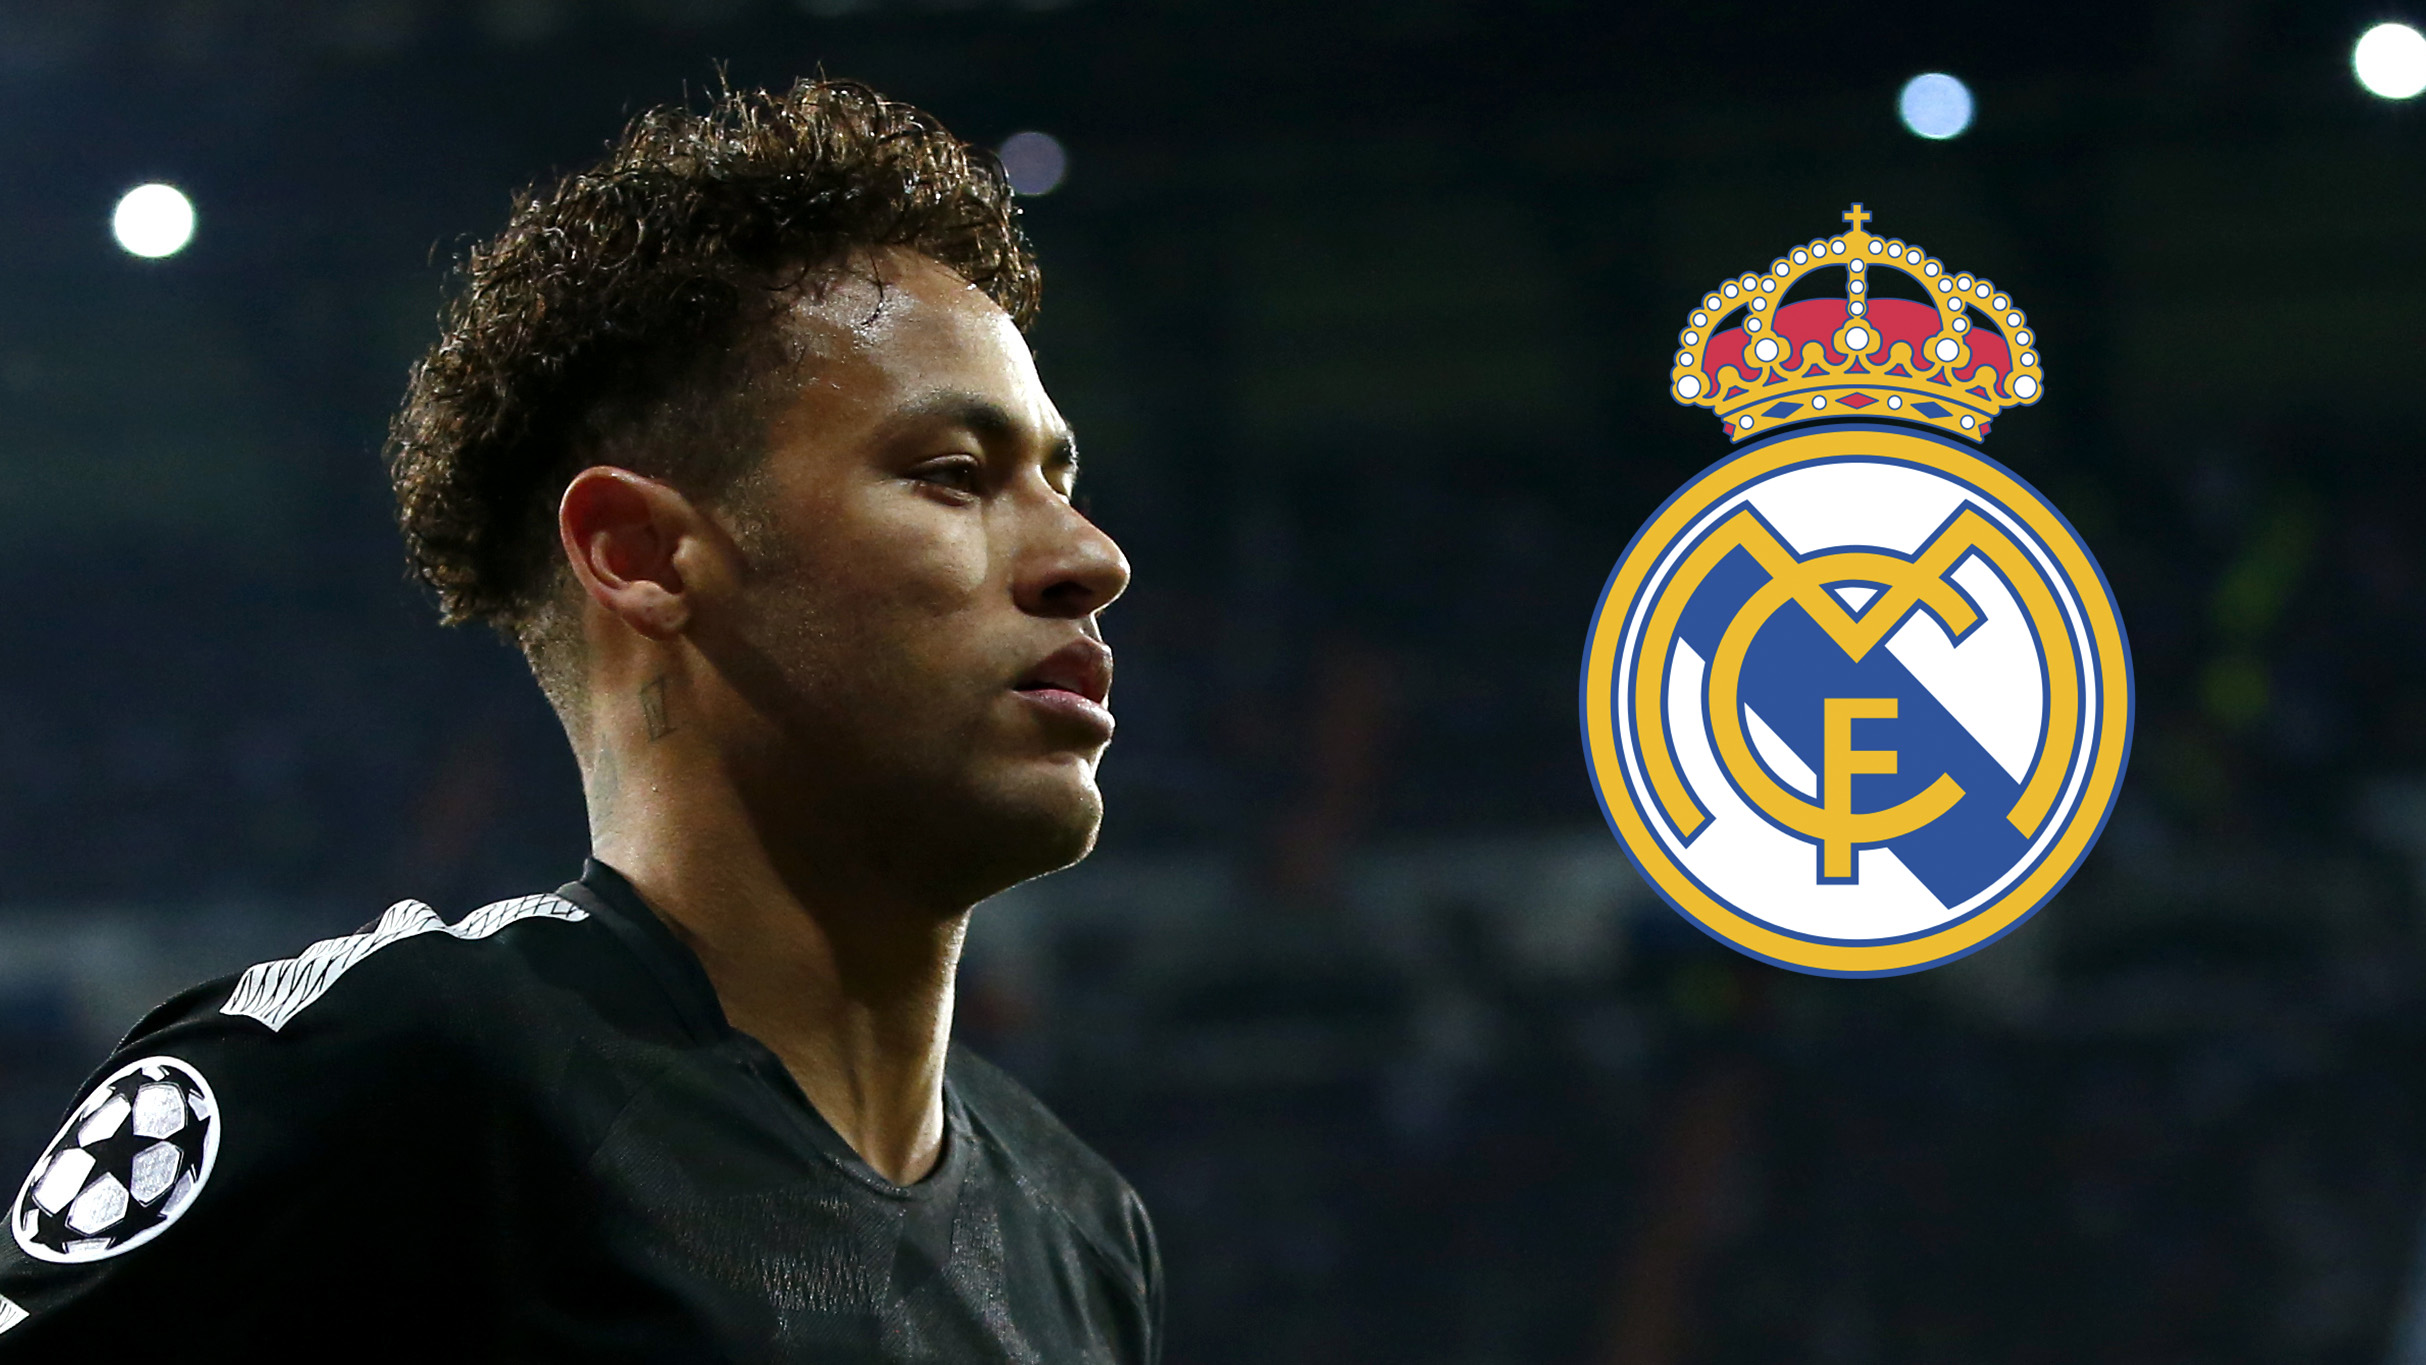 Transfer news and rumours LIVE: Real Madrid to include Jovic and Navas in Neymar bid